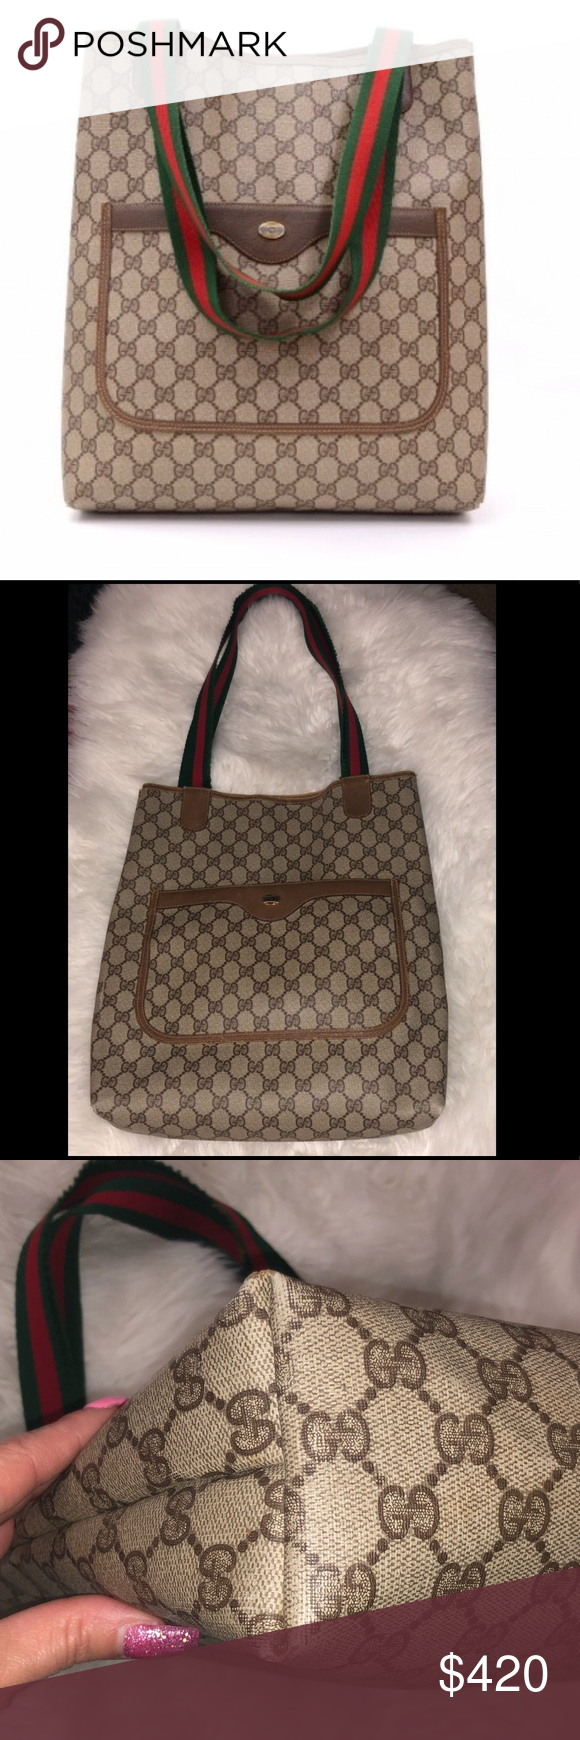 862c41fd61 Gucci Vintage Authentic Tote Bag Purse Authentic Vintage Gucci Brown GG PVC  Canvas and Leather Tote